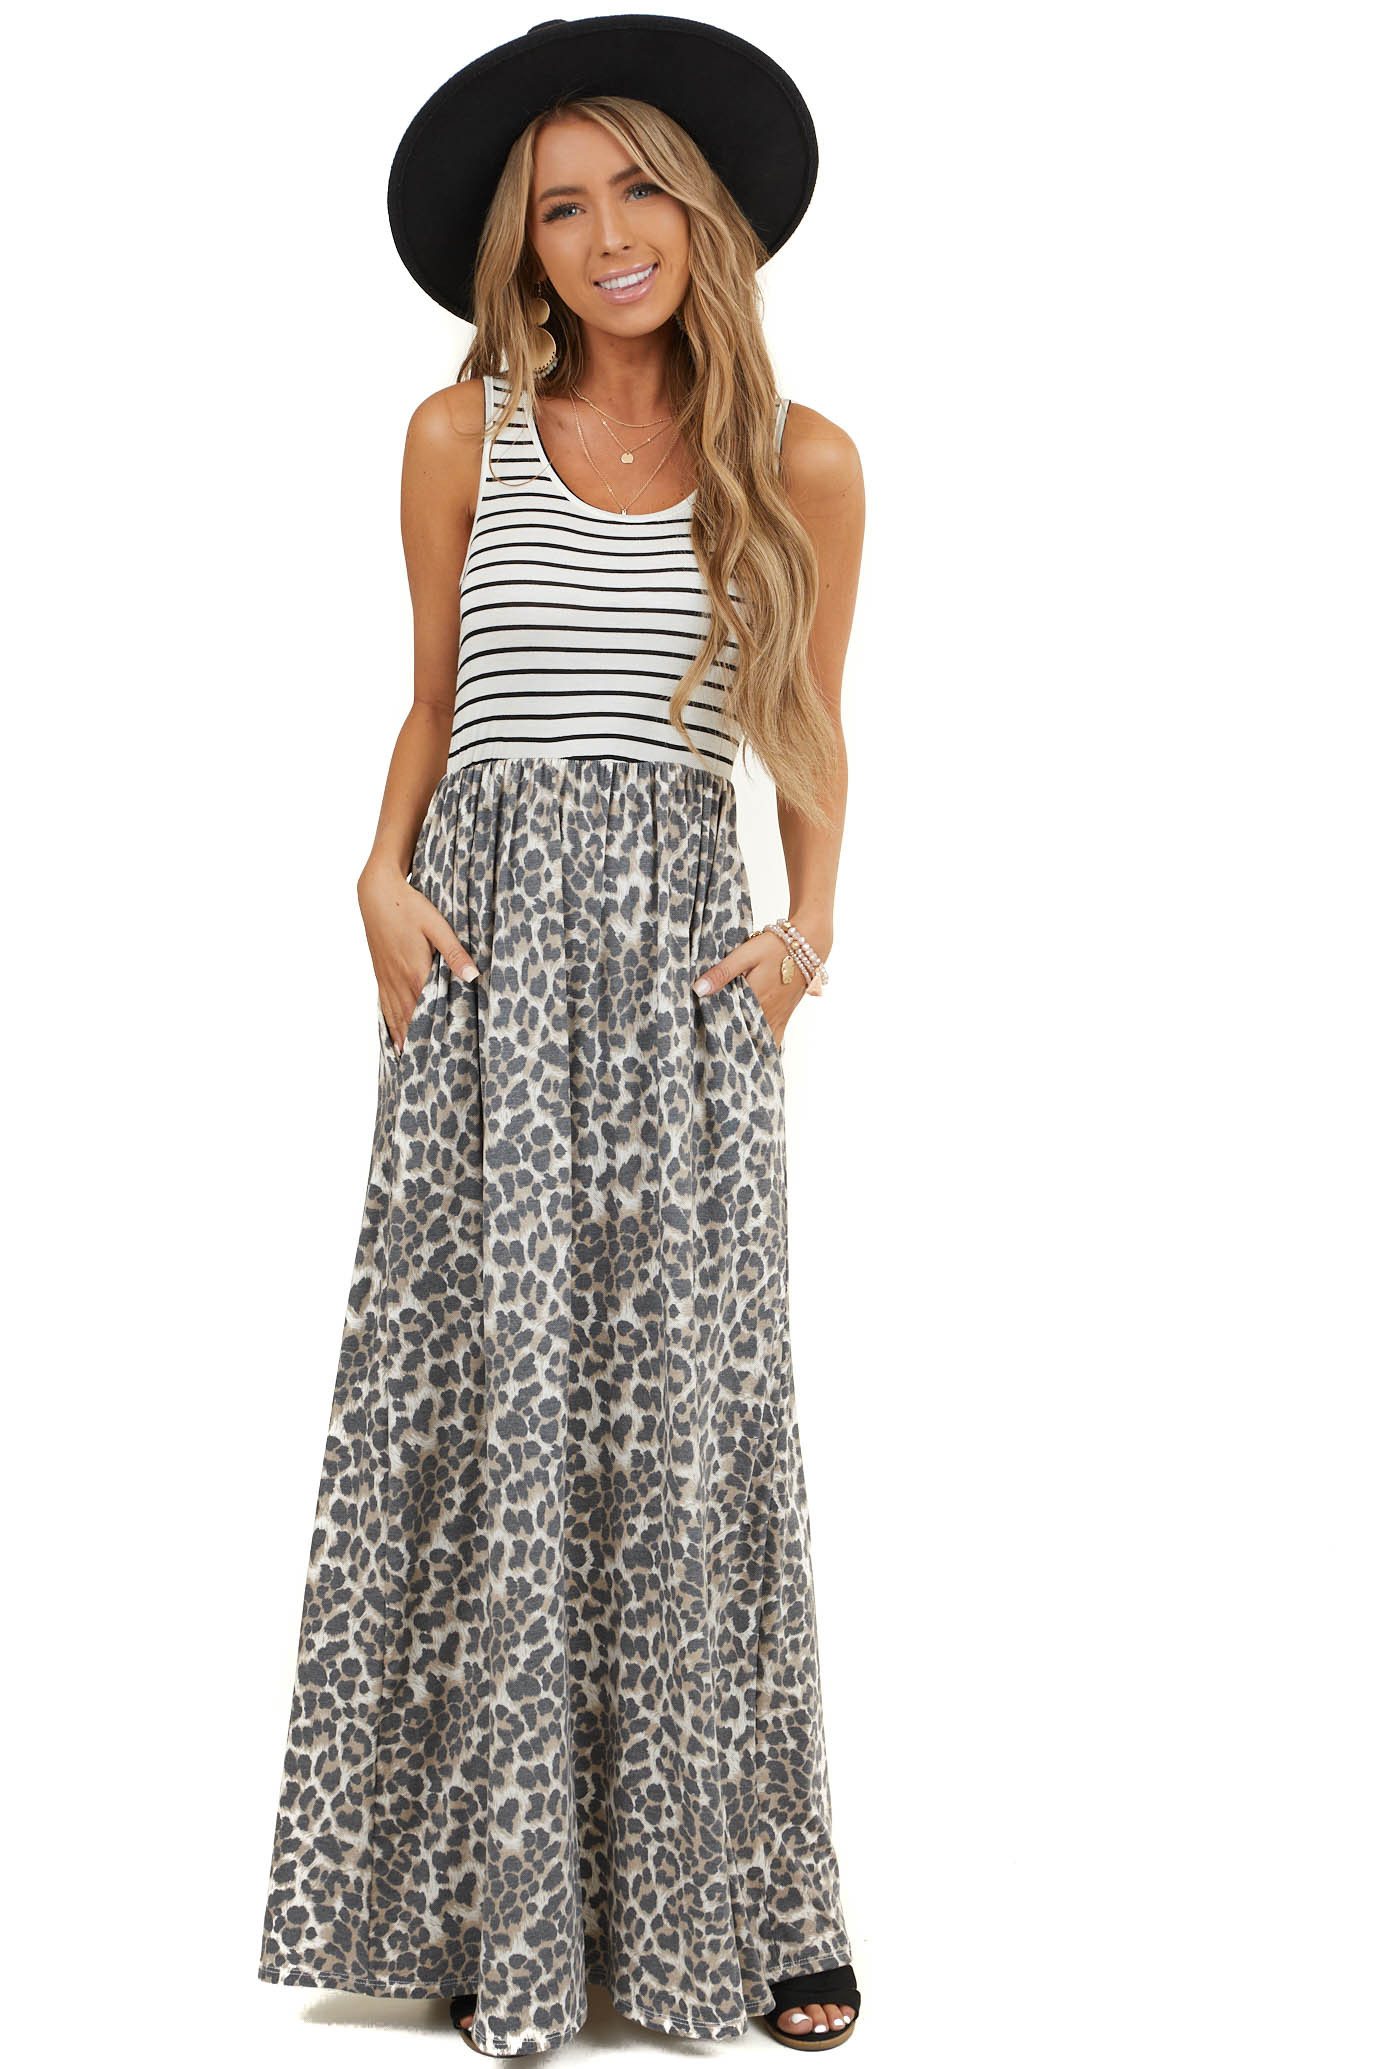 Ivory and Taupe Leopard Print Sleeveless Maxi Dress